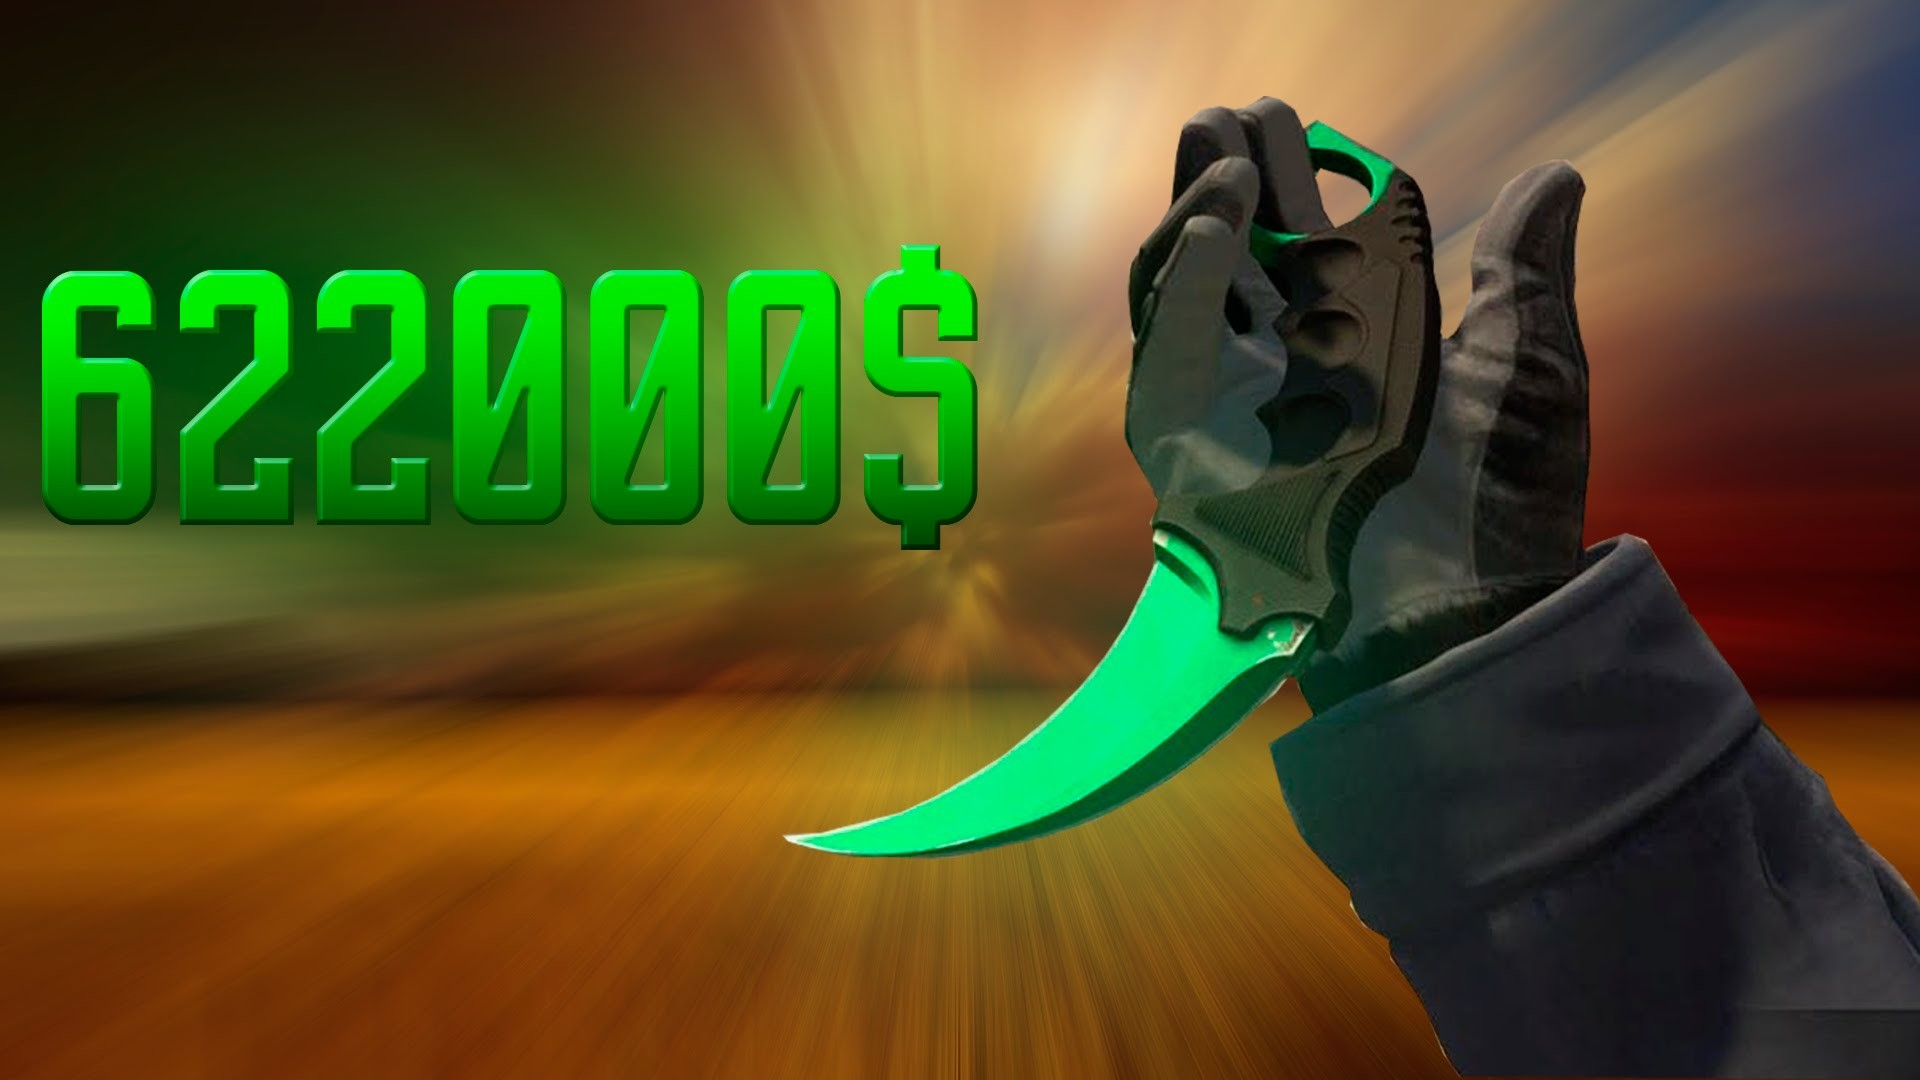 CS:GO – $622,000 Inventory (854 Knives) The Most EXPENSIVE Steam Inventory  in 2016! – YouTube